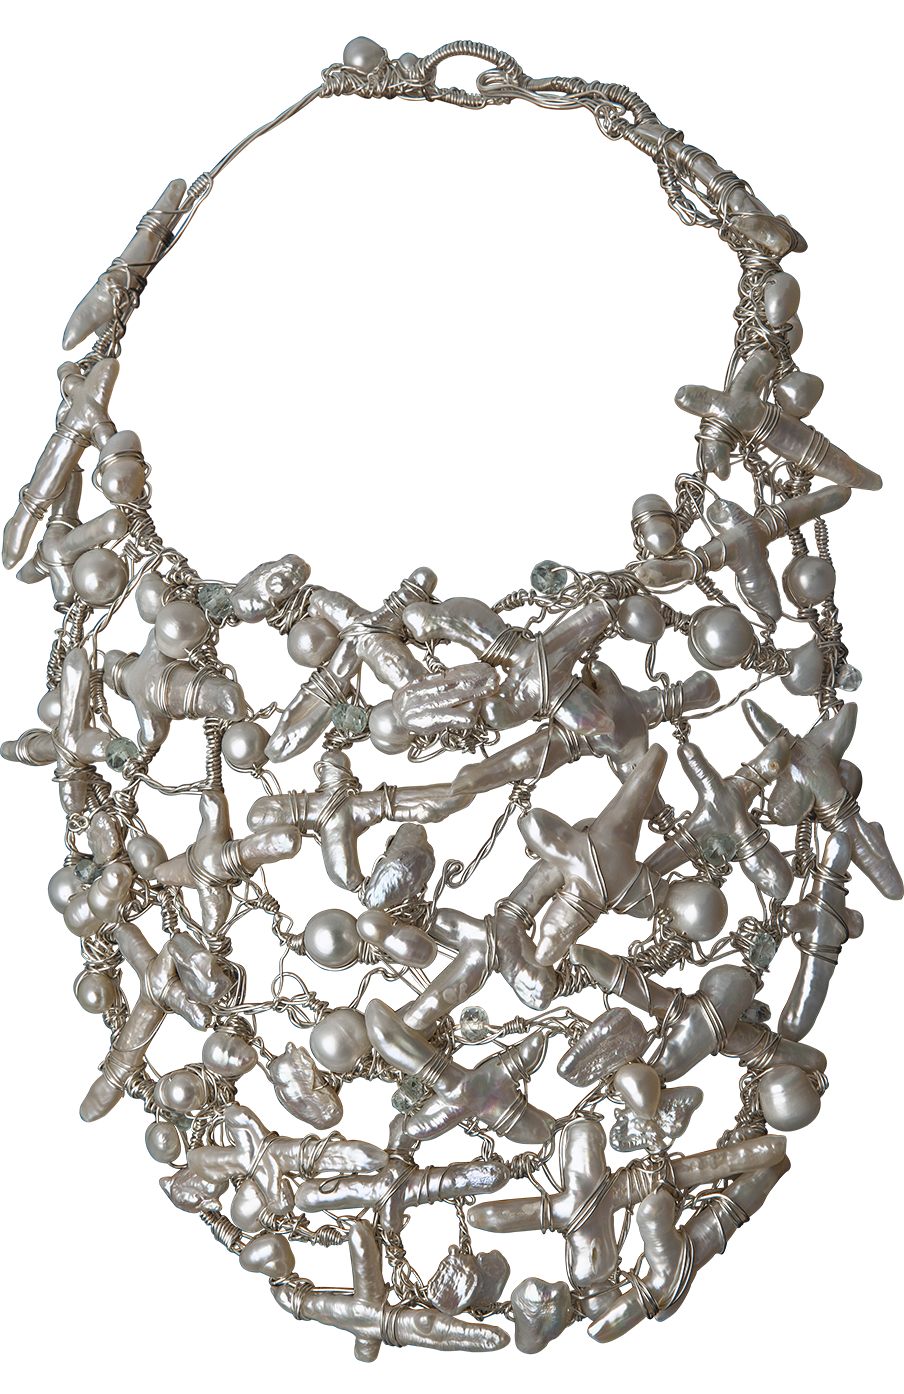 FRIDA | Fine Jewellery. Caribou Collection, Ice neck sculpture. Custom designed pearl and aquamarine neck sculpture.png